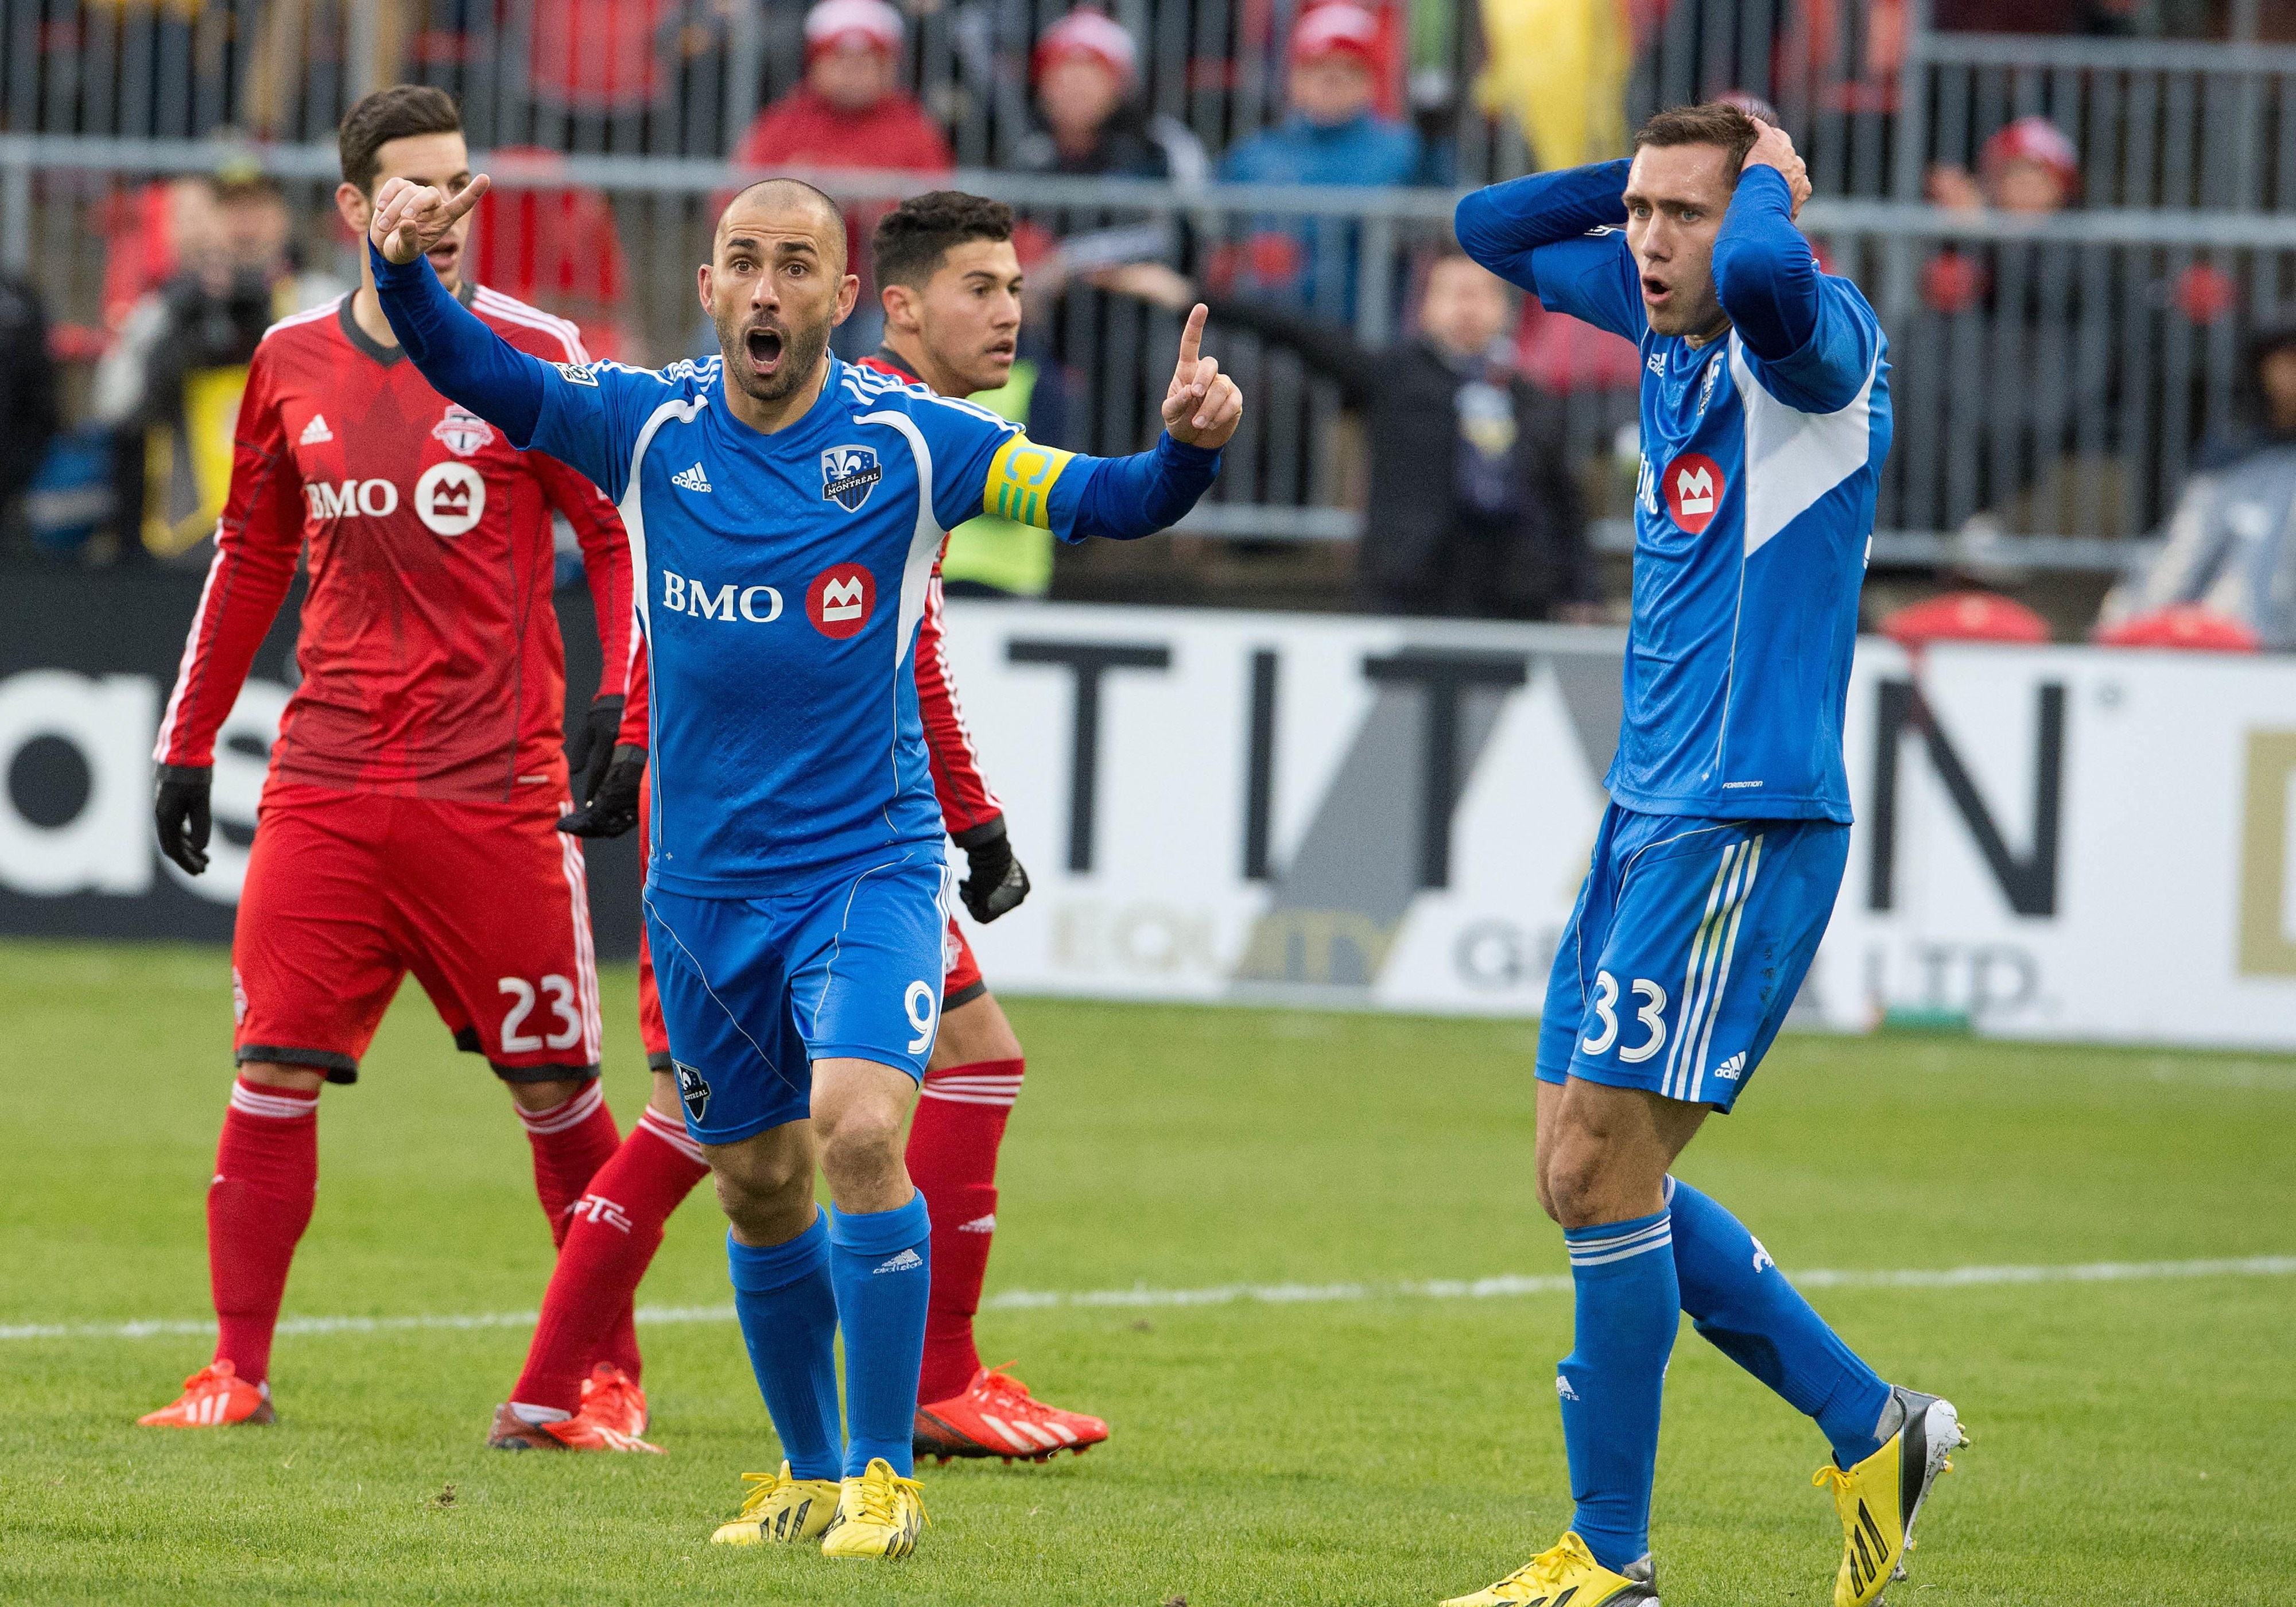 Marco Di Vaio will have to carry the Impact once again if they're going to get back to the playoffs.